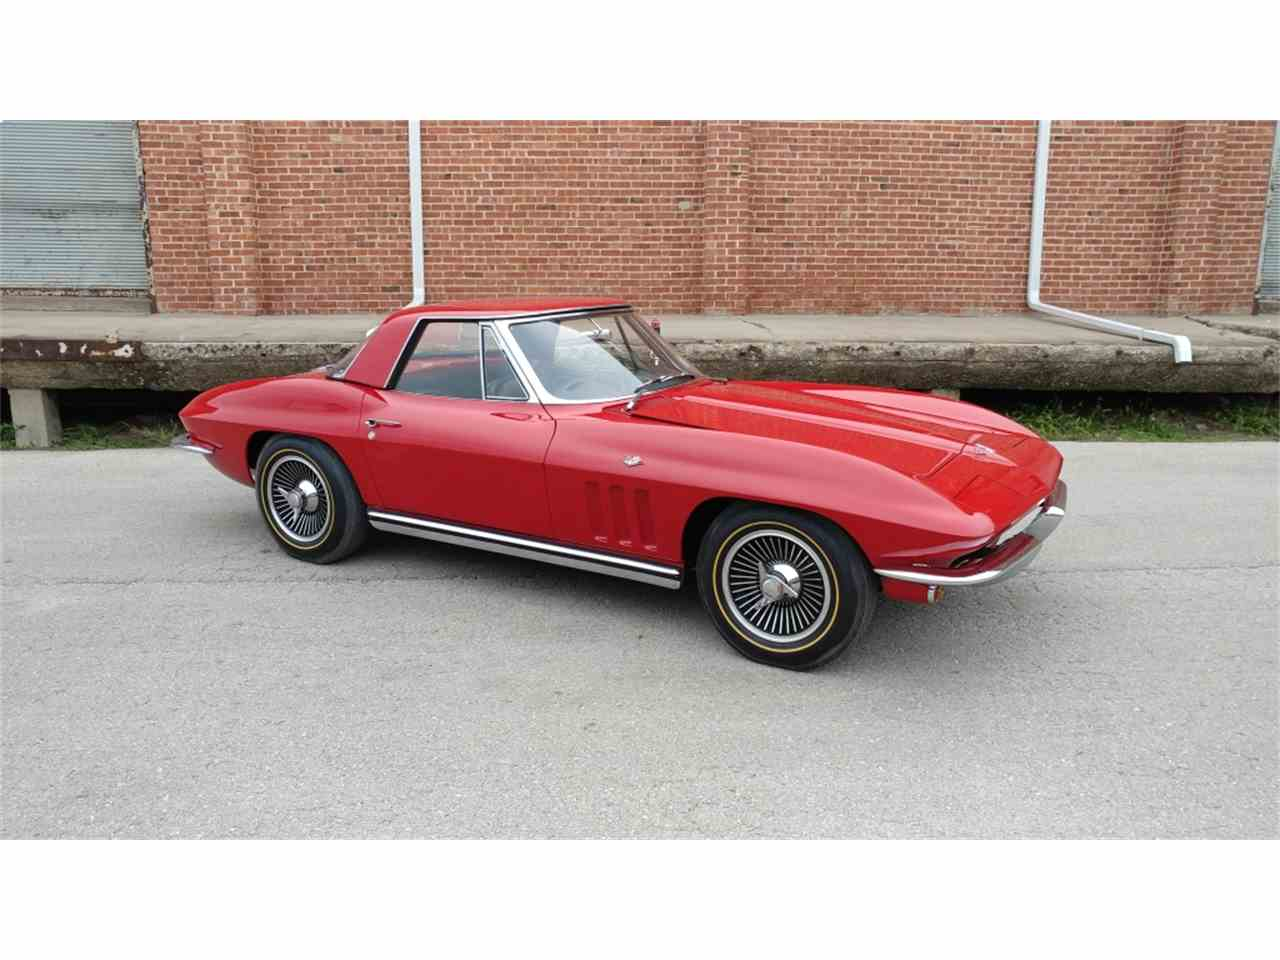 Large Picture of 1965 Corvette located in N. Kansas City Missouri - $69,995.00 Offered by Vintage Vettes, LLC - MO2I